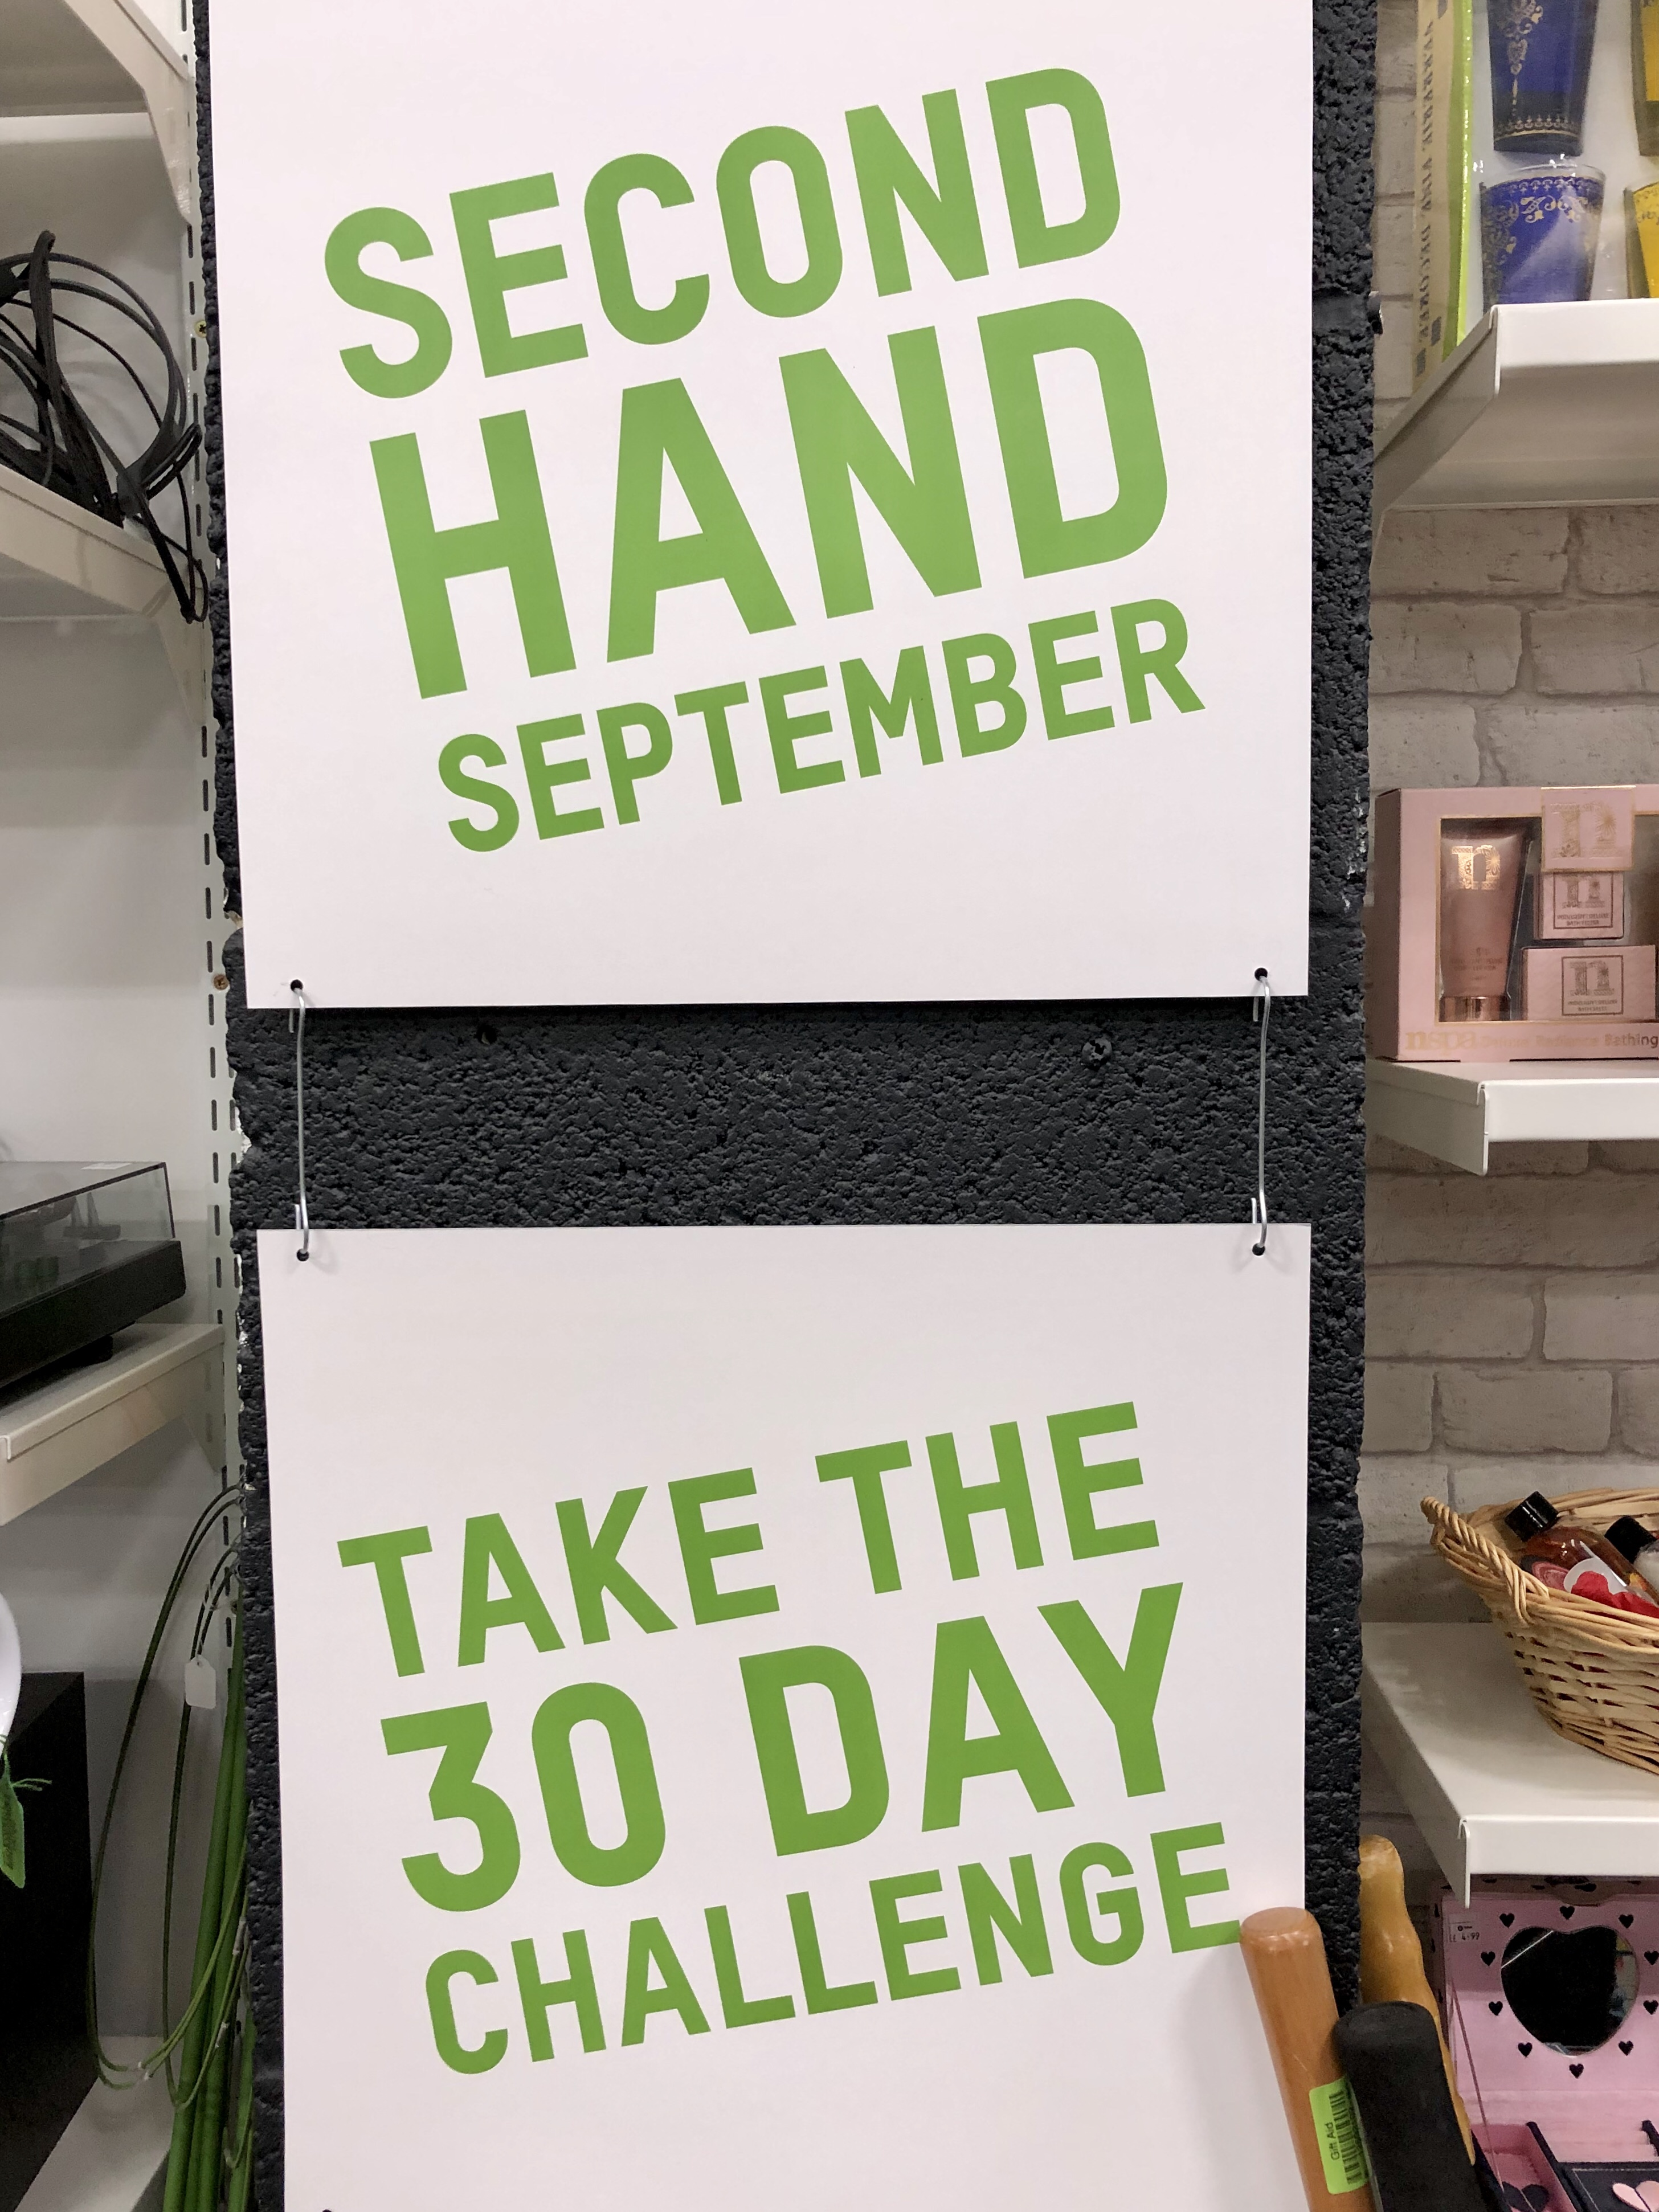 Sign reading Second Hans September  take the 30 day challenge